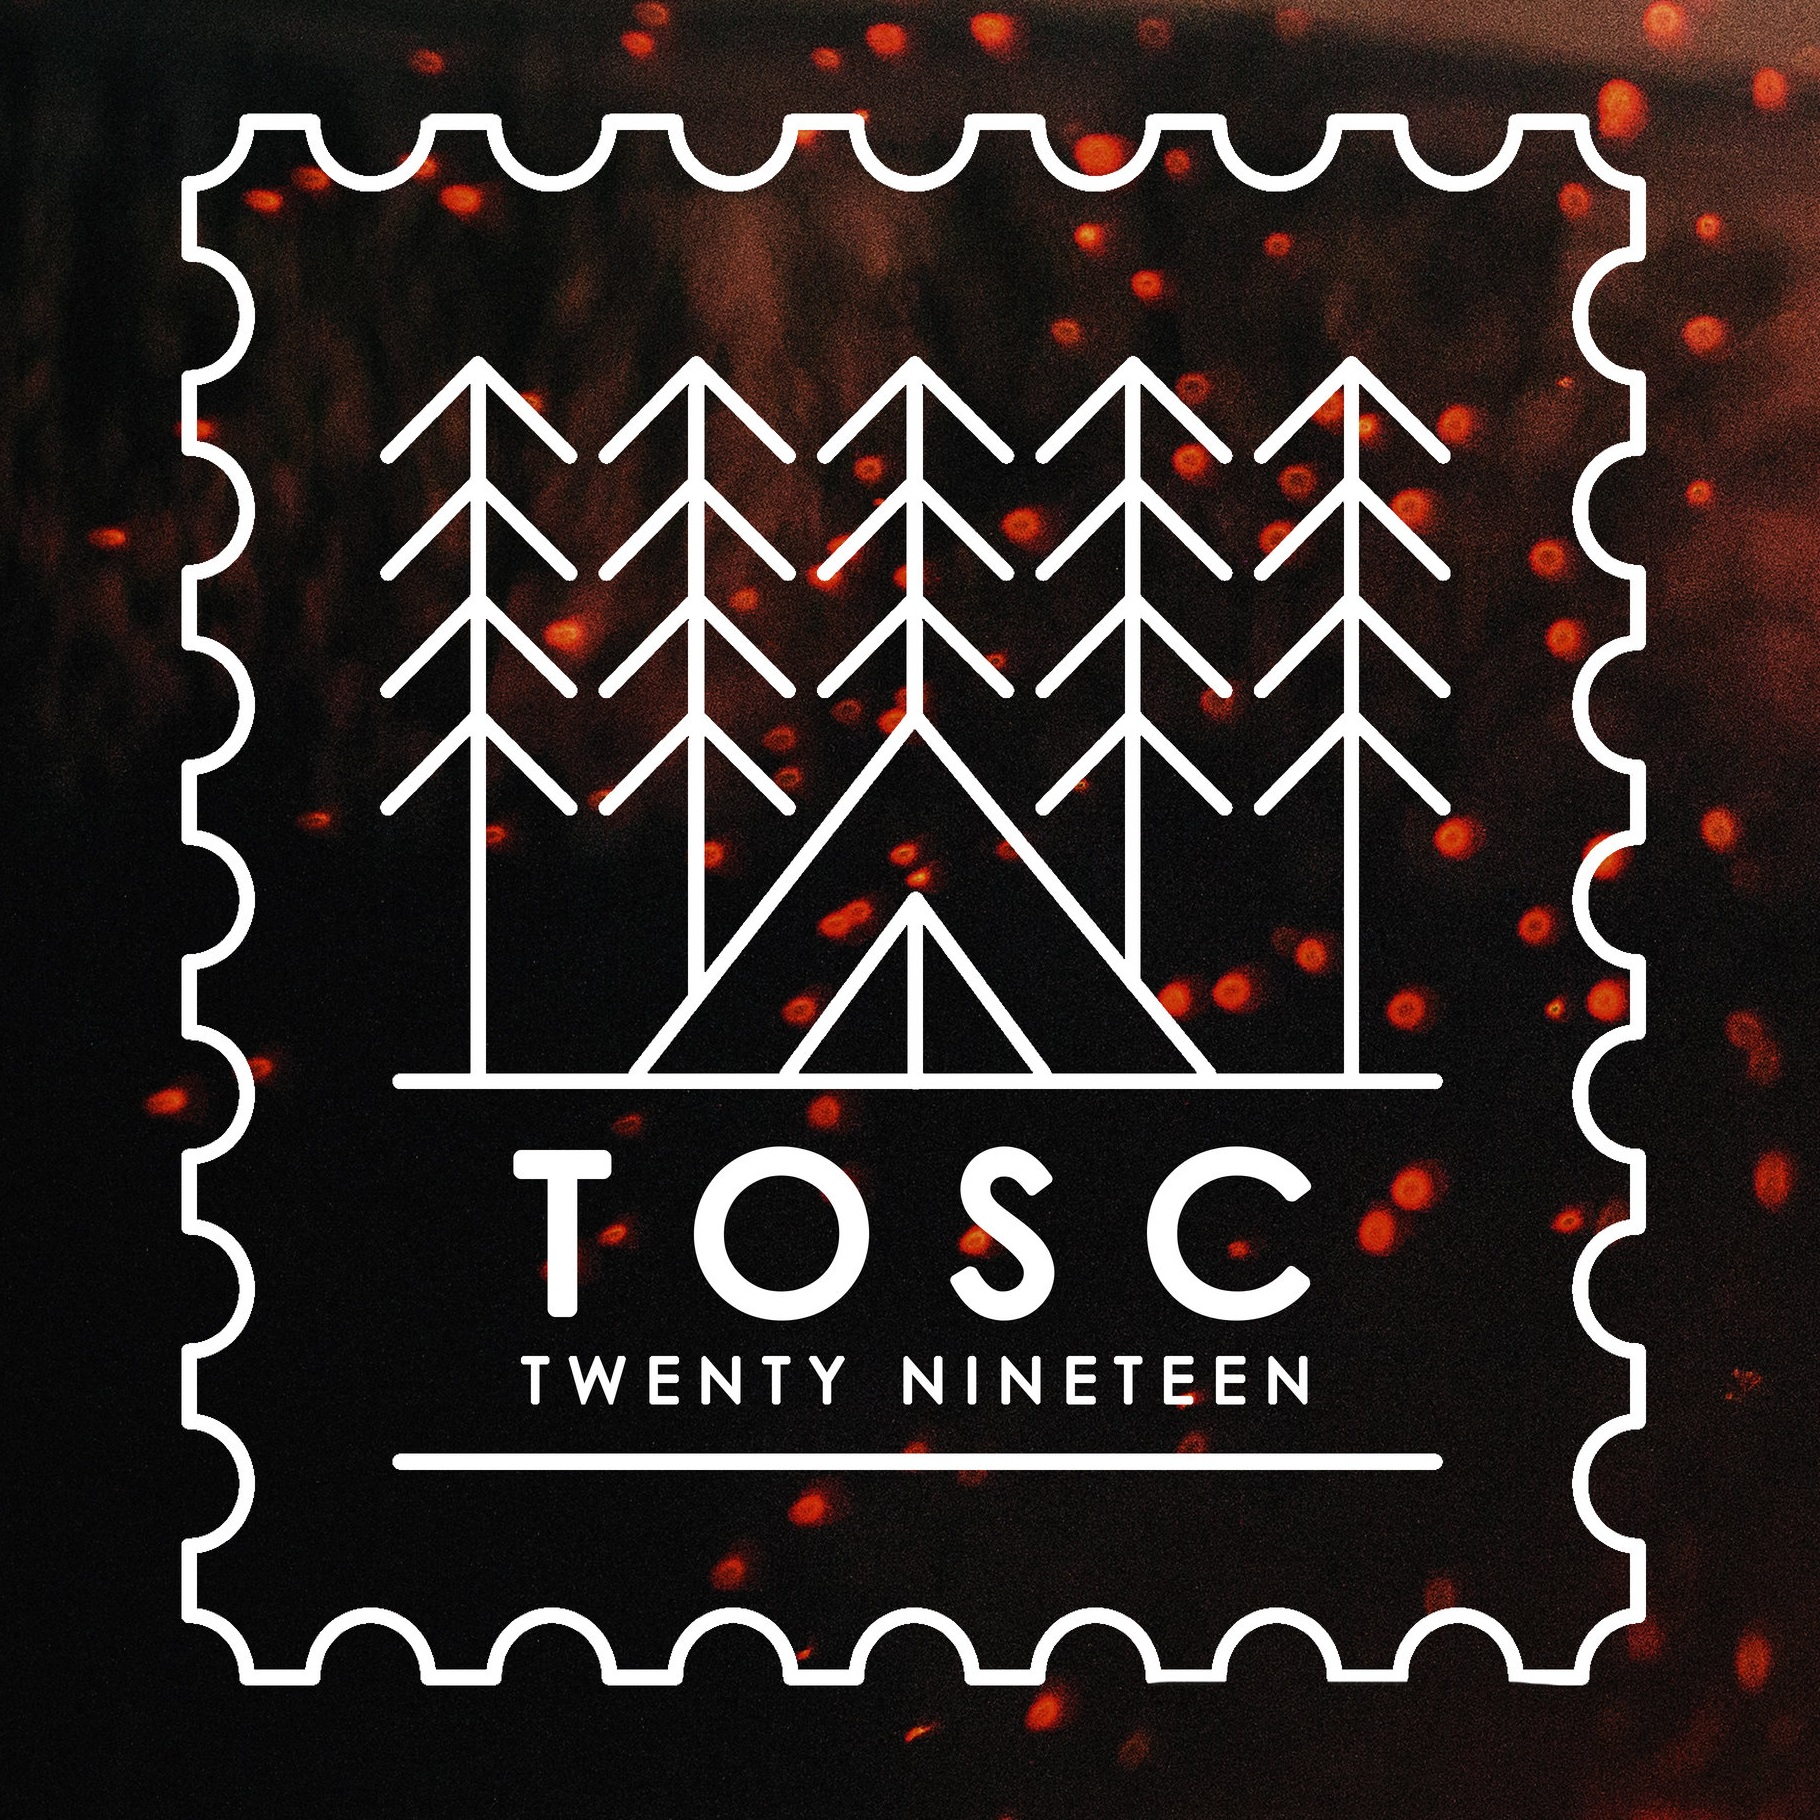 TOSC 2019 - TOSC (theOAK Summer Camp) is coming up this JUNE 28-30!!! It's a staple of the summer- only classic fun, but serving, learning, and connecting together!Open to all students exiting 7th-12th grades